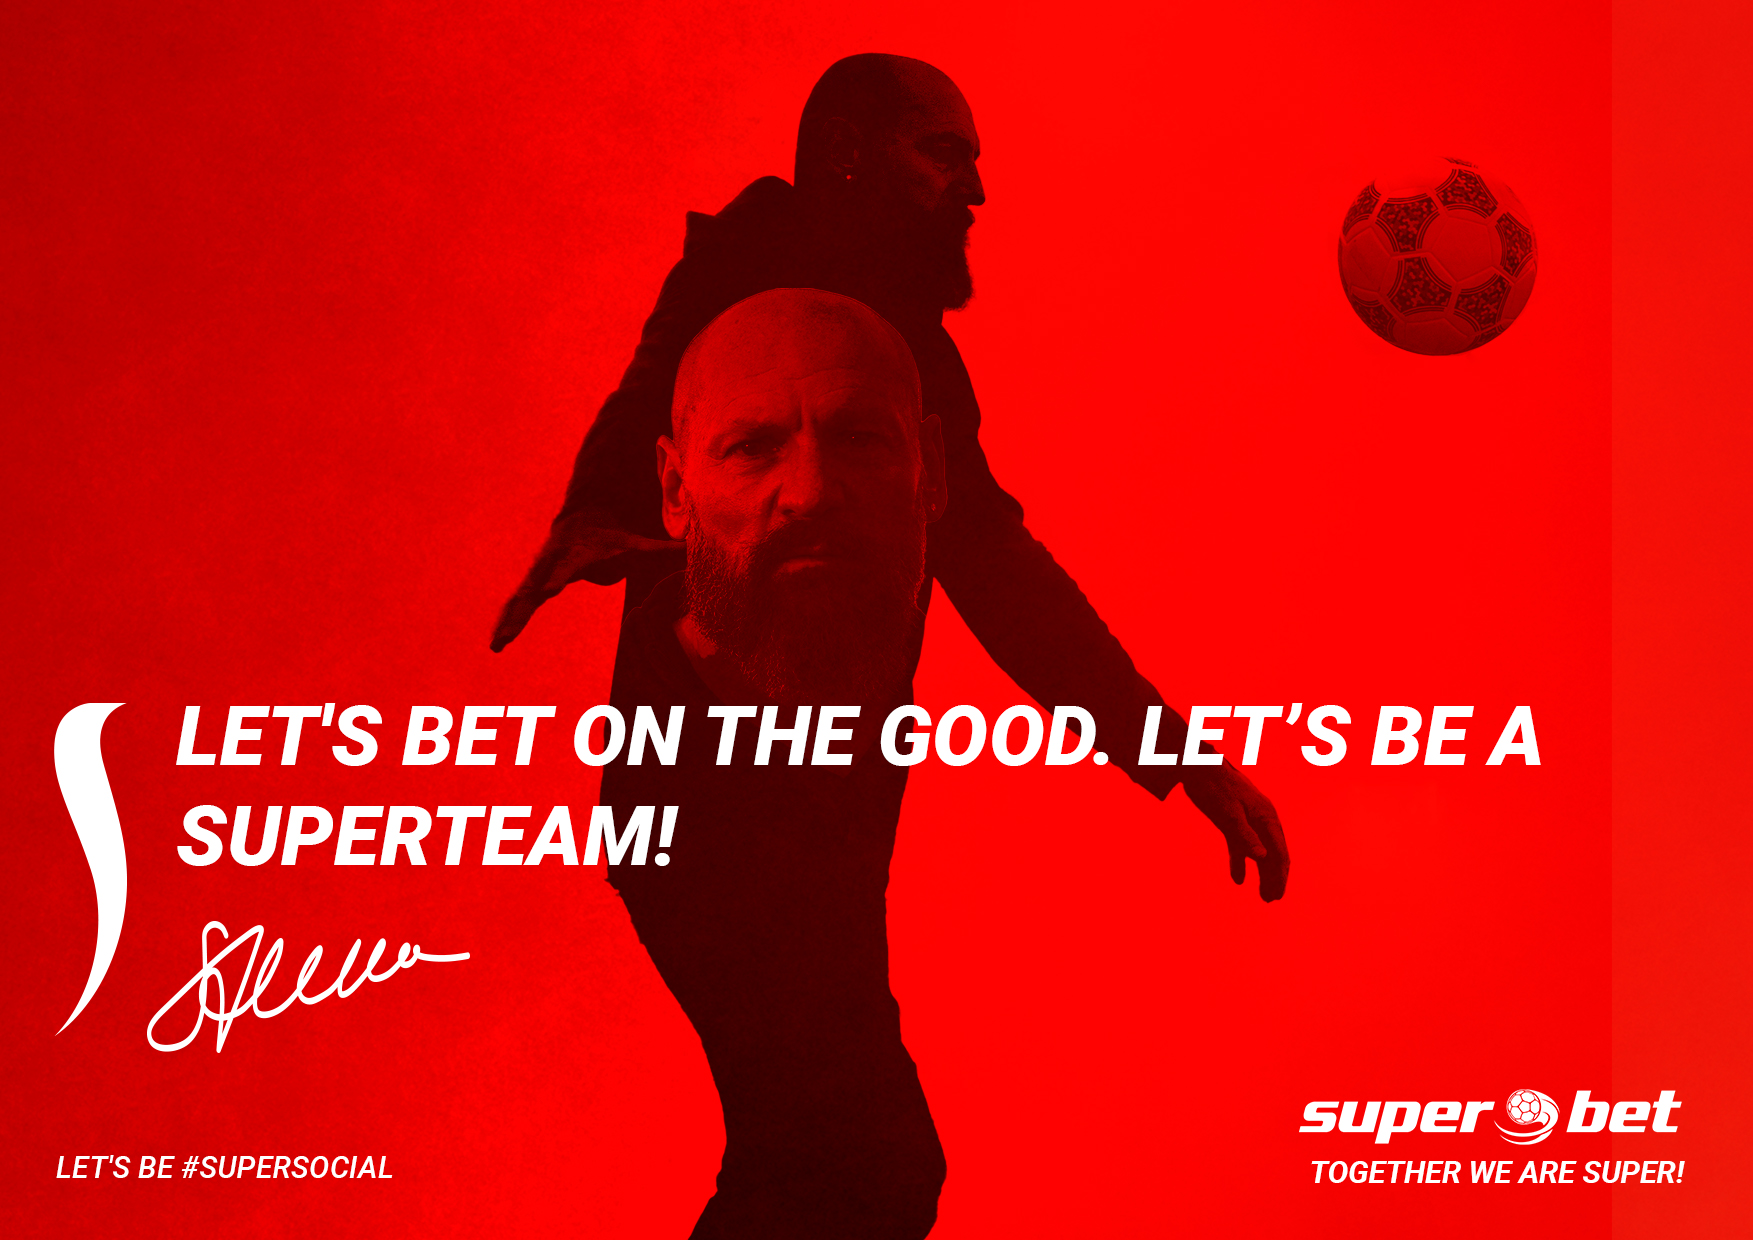 The #SUPERSOCIAL platform by Superbet and Rusu+Borțun encourages Romanians to win the match with 2020